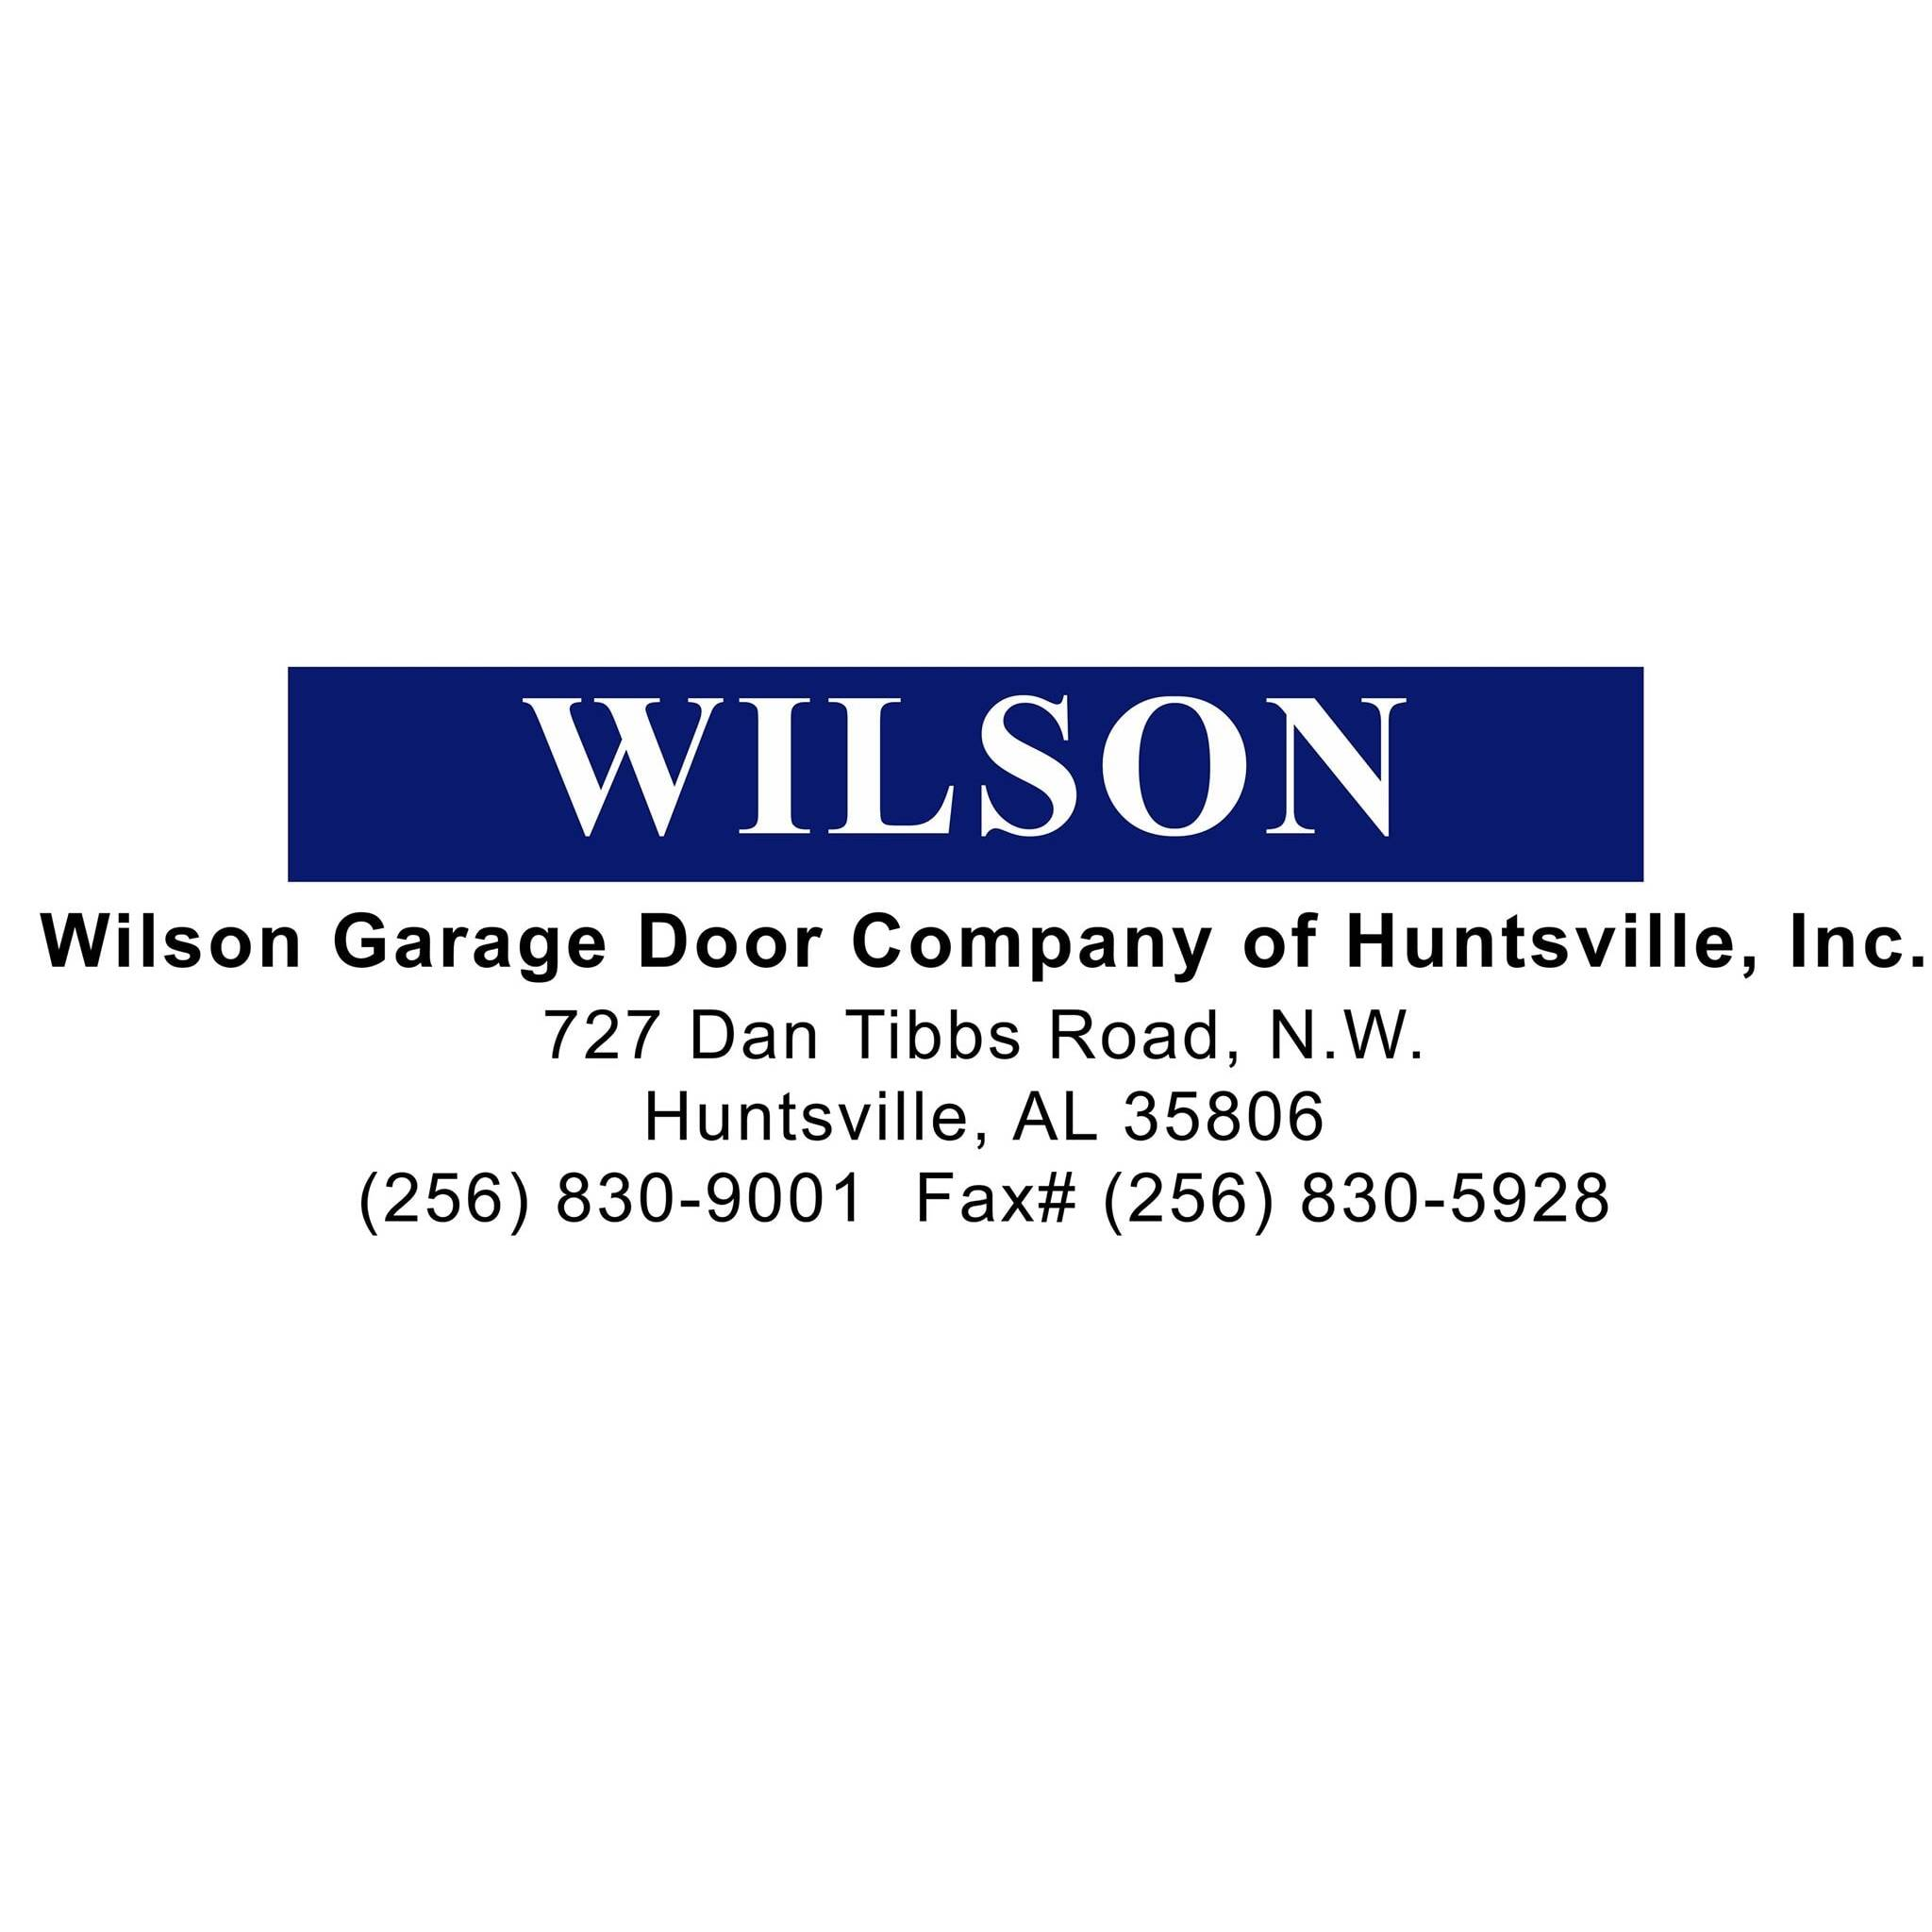 Wilson Garage Door Company of Huntsville